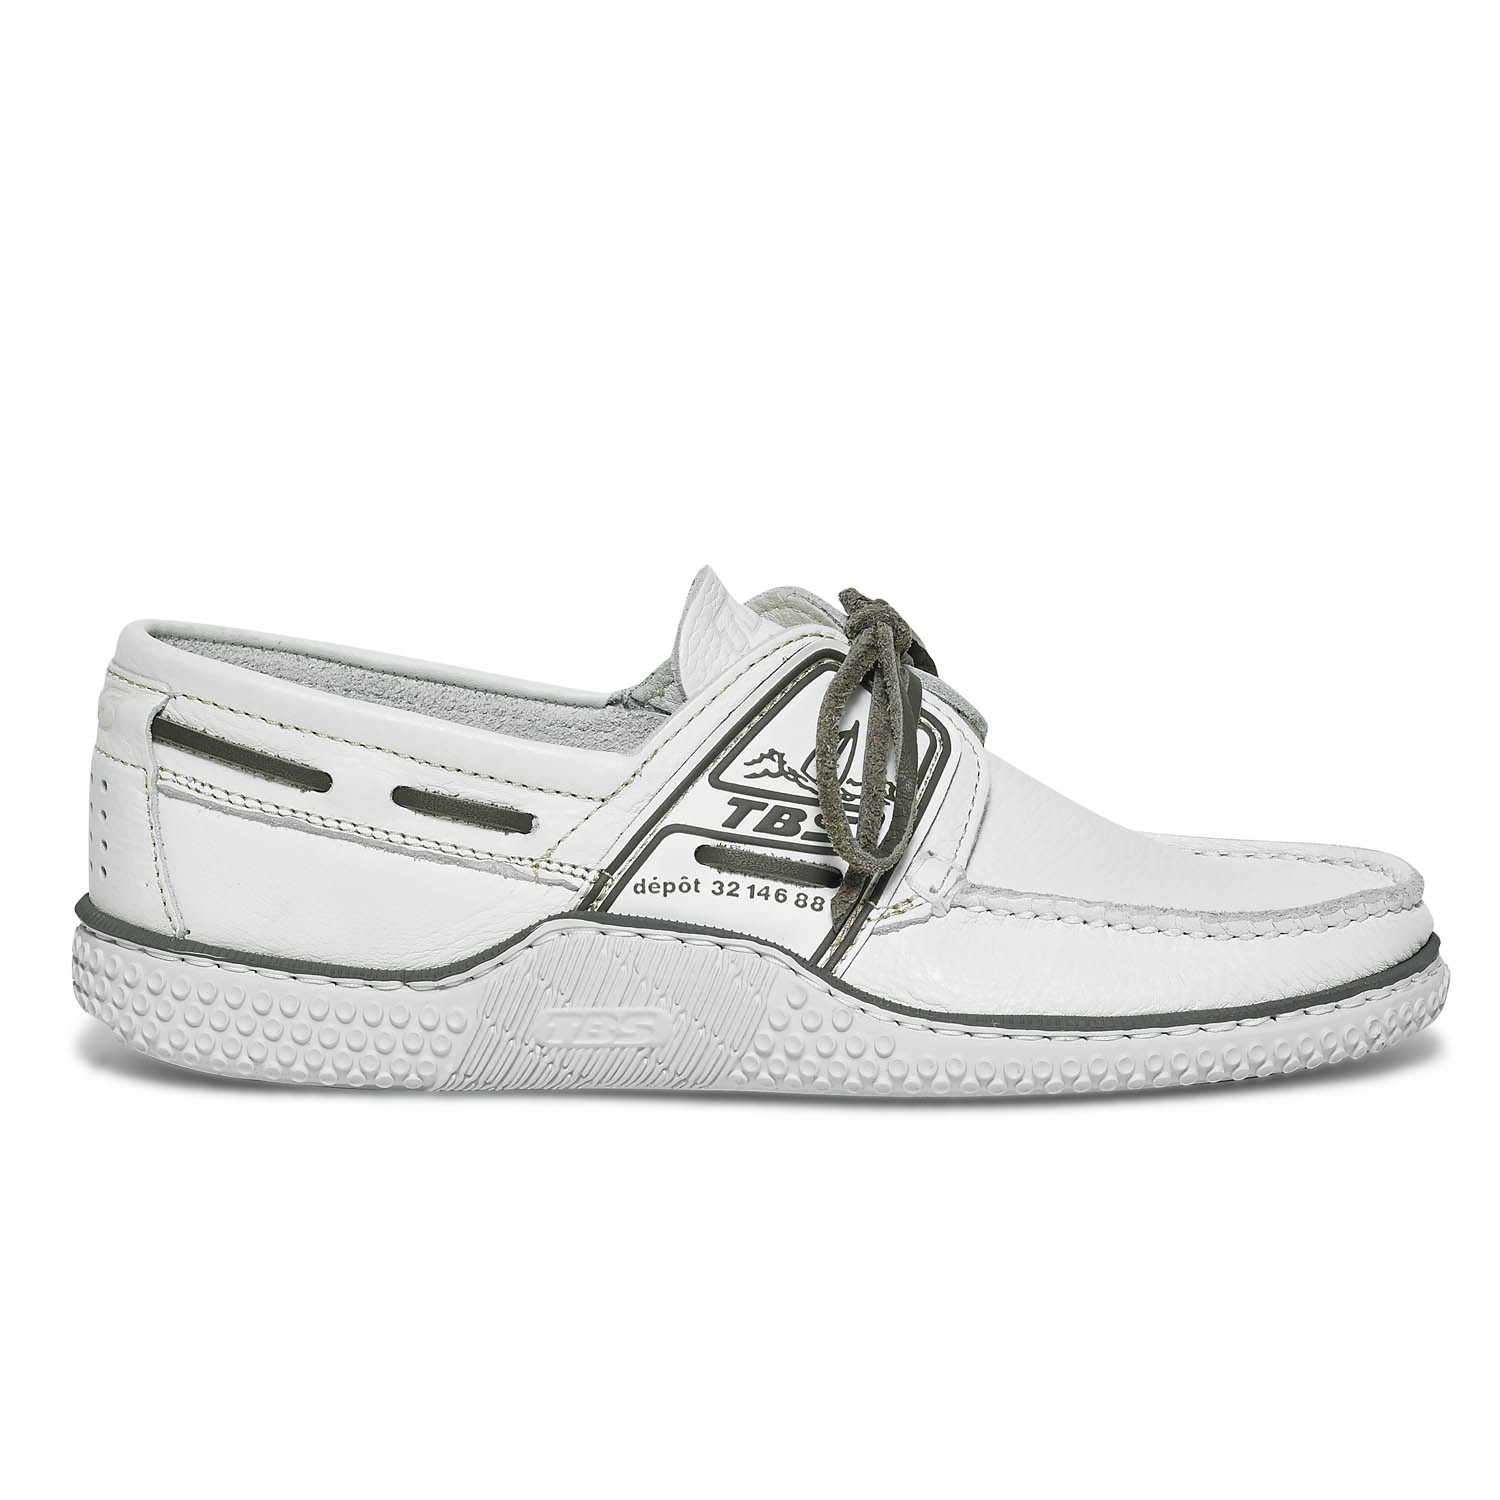 Blanches Tbs Bateaux Chaussures Tbs Chaussures LqGzMpSUV